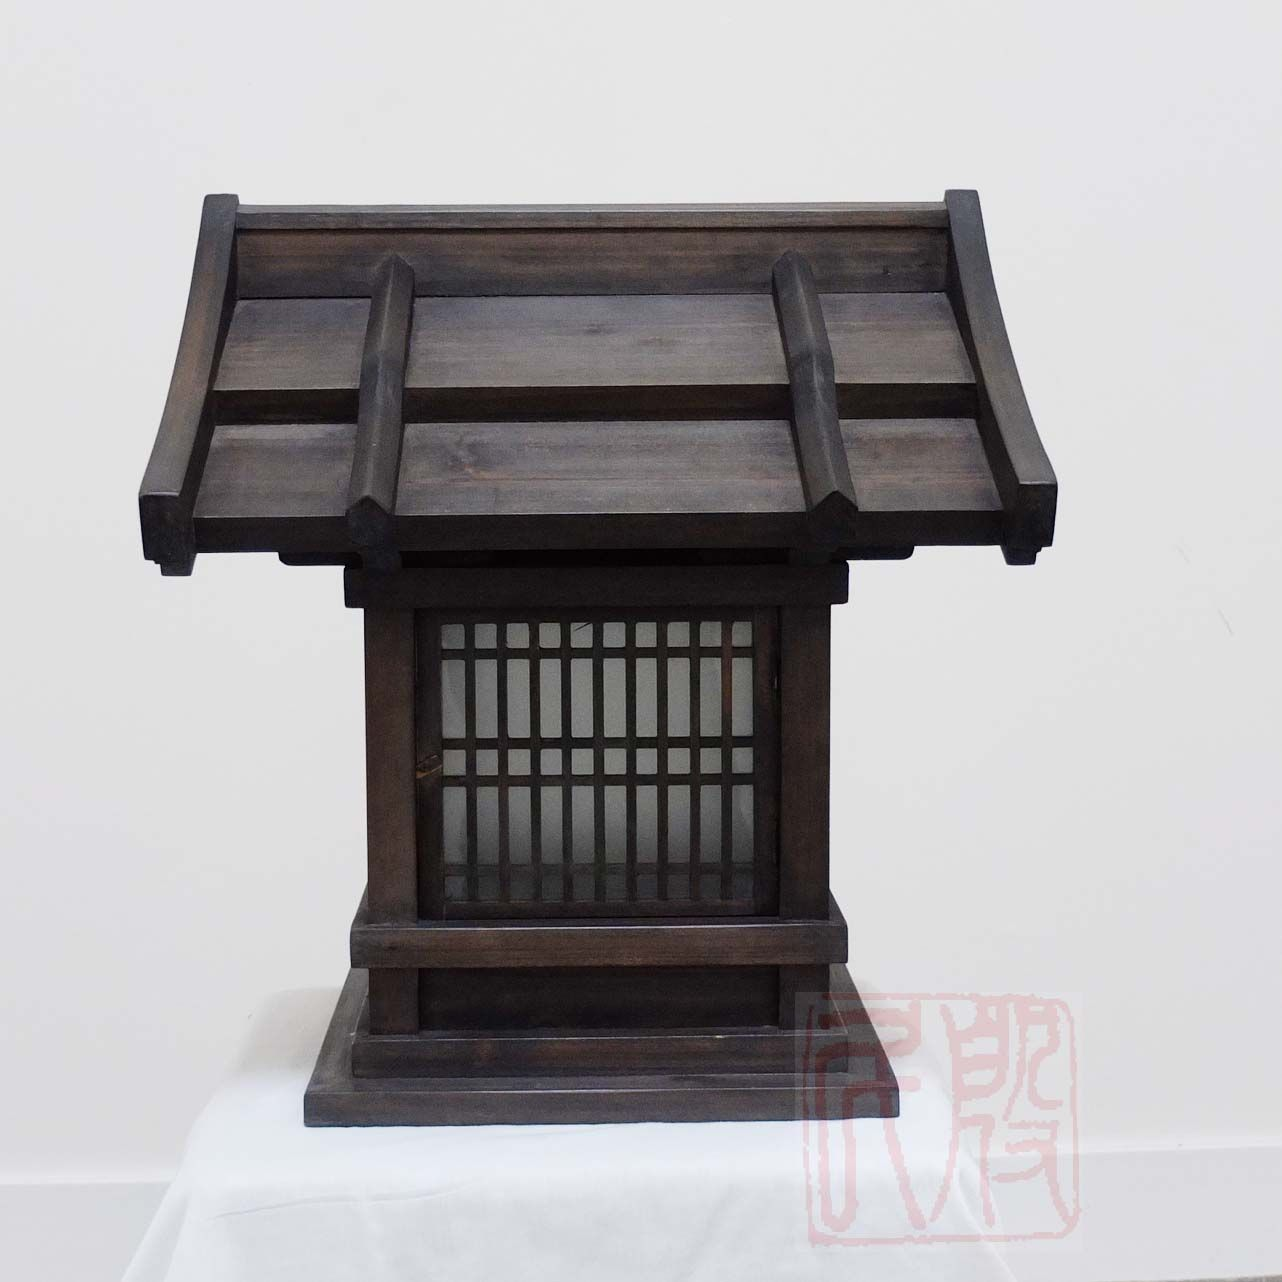 Japanese Wooden Lantern Outdoor Wl2 Projects To Try In 2019